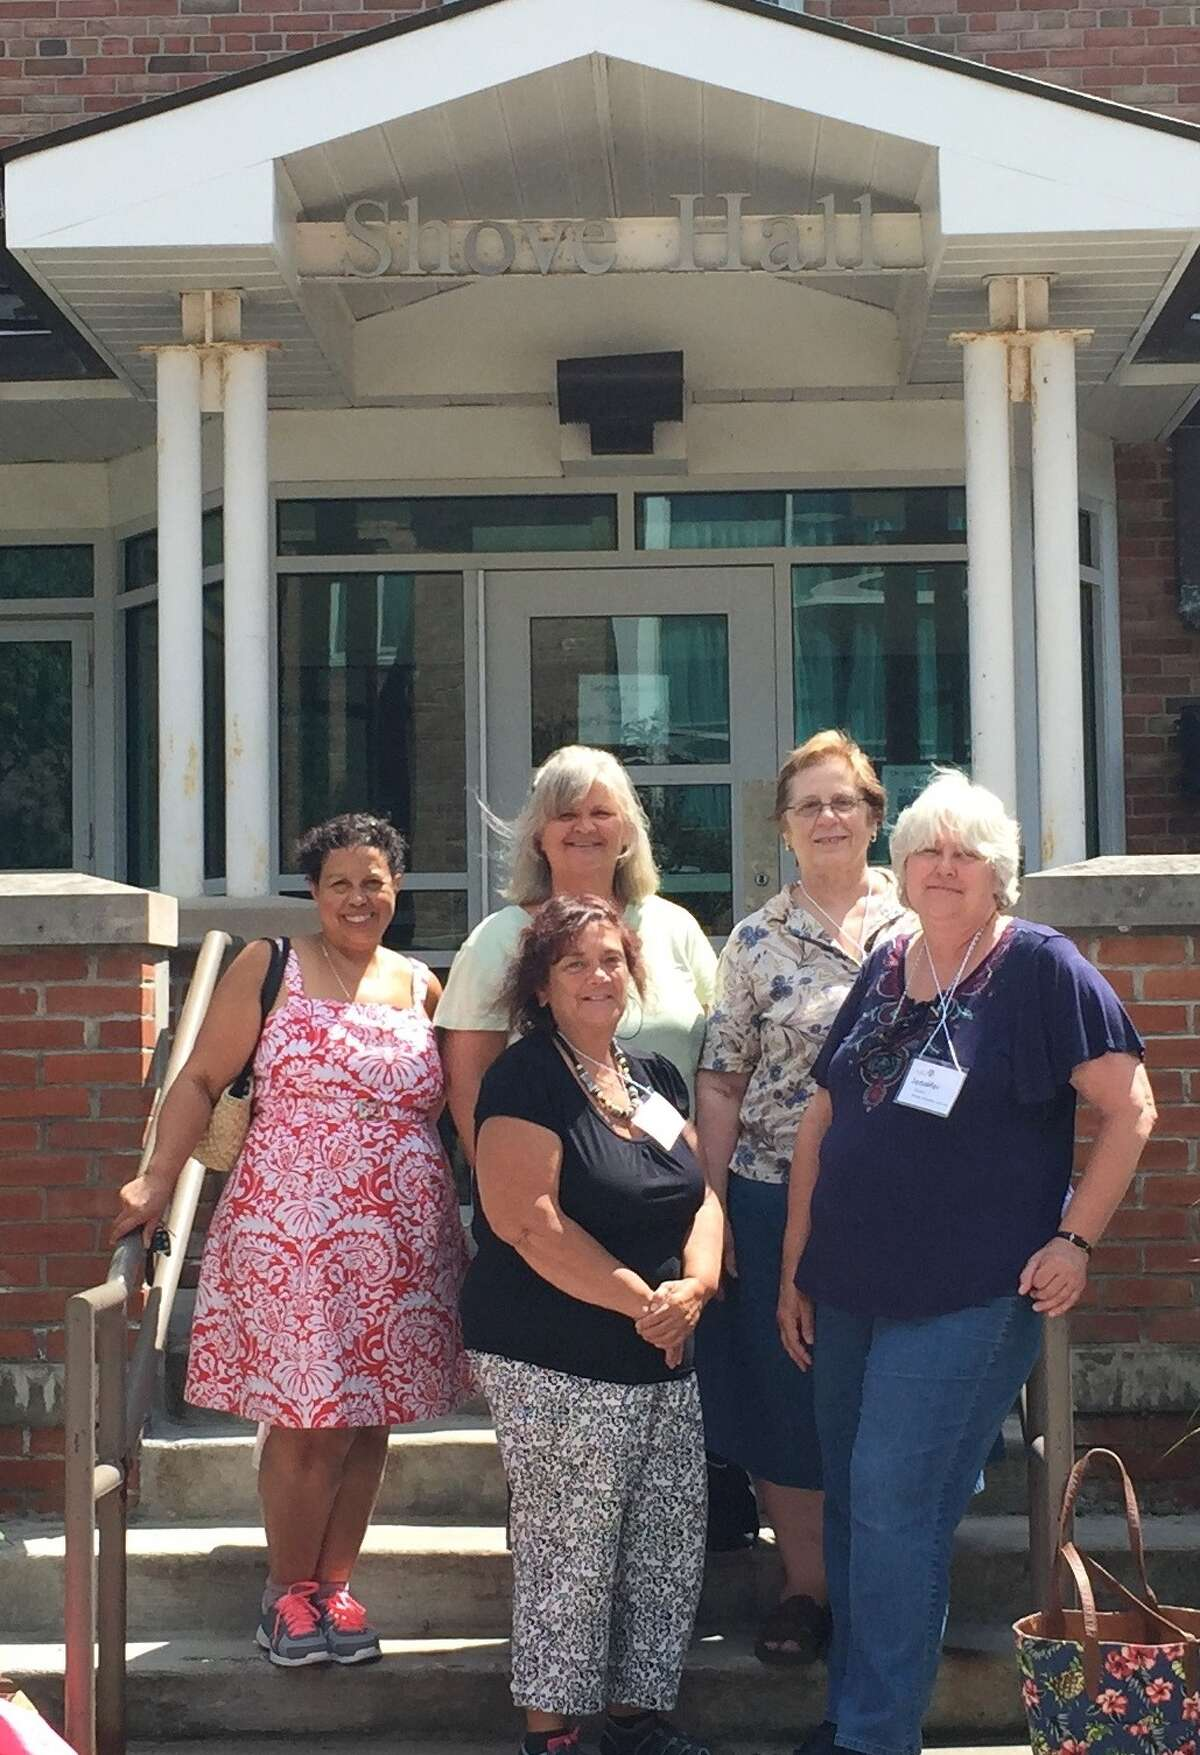 Amsterdam-Gloversville-Johnstown AAUW members recently attended the NYS AAUW Summer Conference at Cazenovia College. The conference focused on how branches can build leadership and program for success. Pictured by Shove Hall, the dormitory where they stayed, are Irene Collins, Ella Ryder, Darcelle Winchell, Paula Lerner and Jennifer Garren. (Submitted photo)